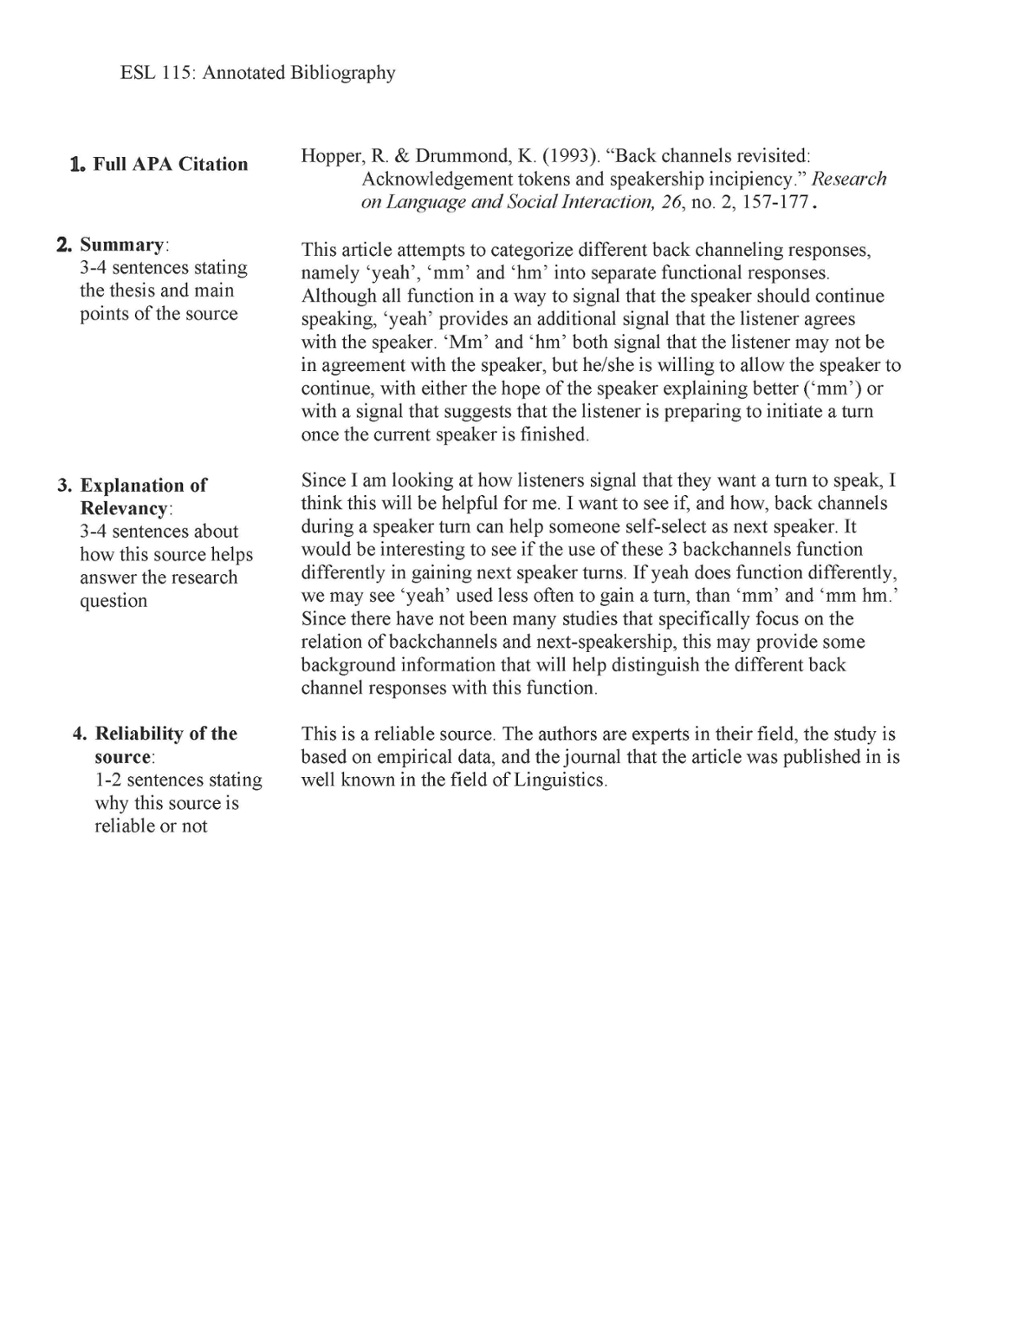 top admission essay ghostwriter site for university